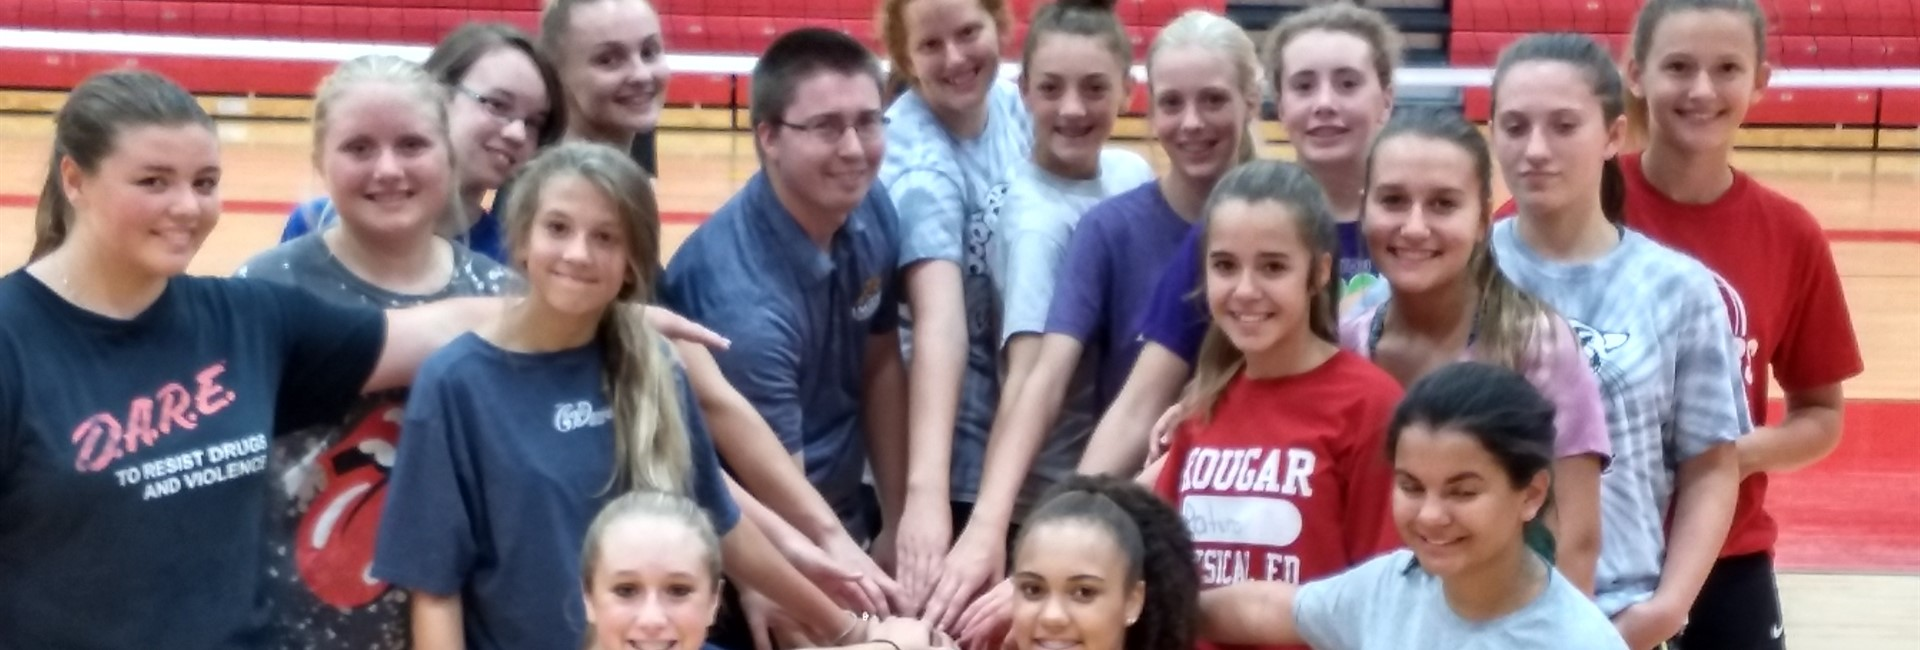 8th Girls VB Team